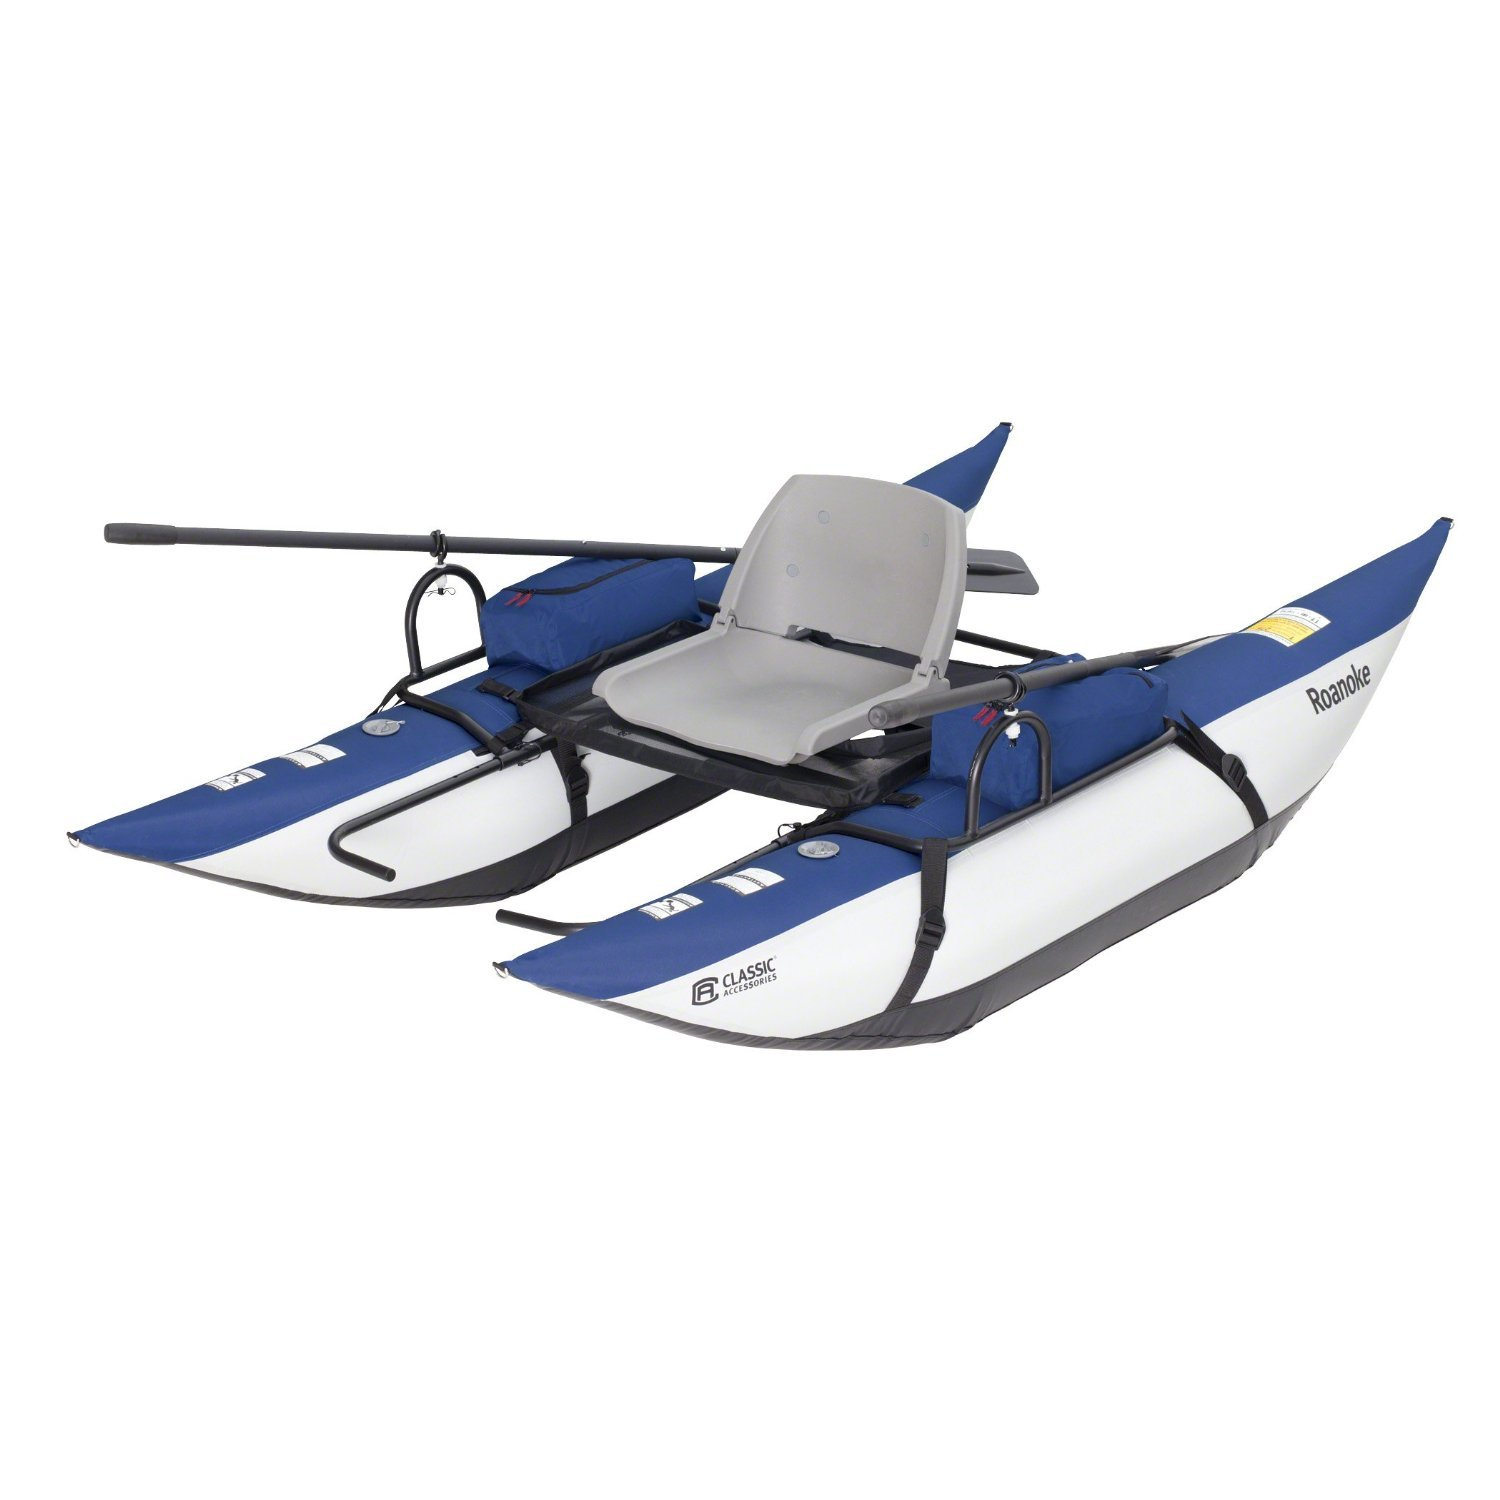 Classic Accessories Roanoke Inflatable Pontoon Boat - Best Flying Fishing Boats